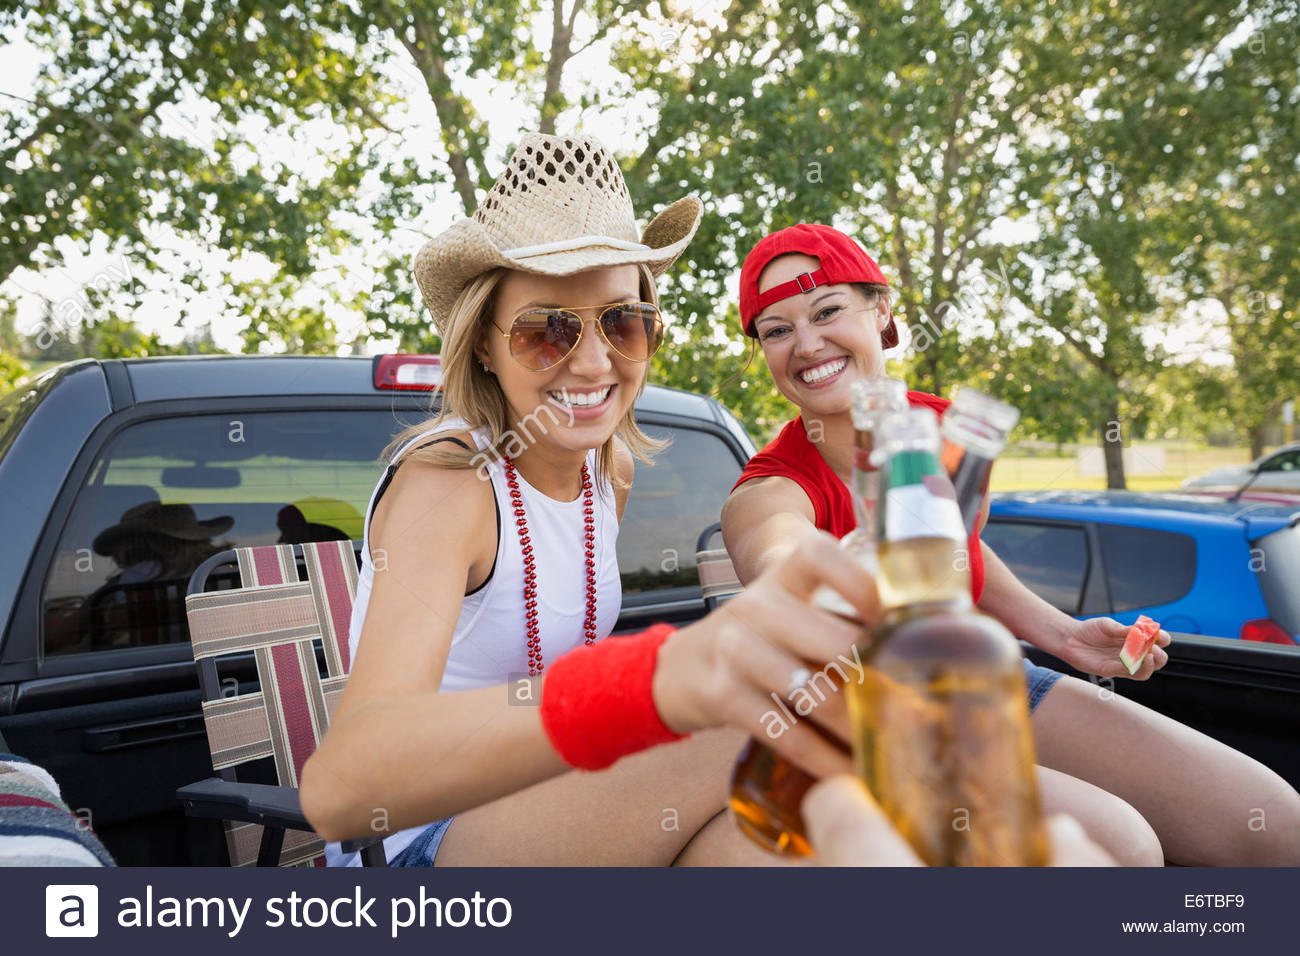 Women toasting each other at tailgate barbecue - Stock Image